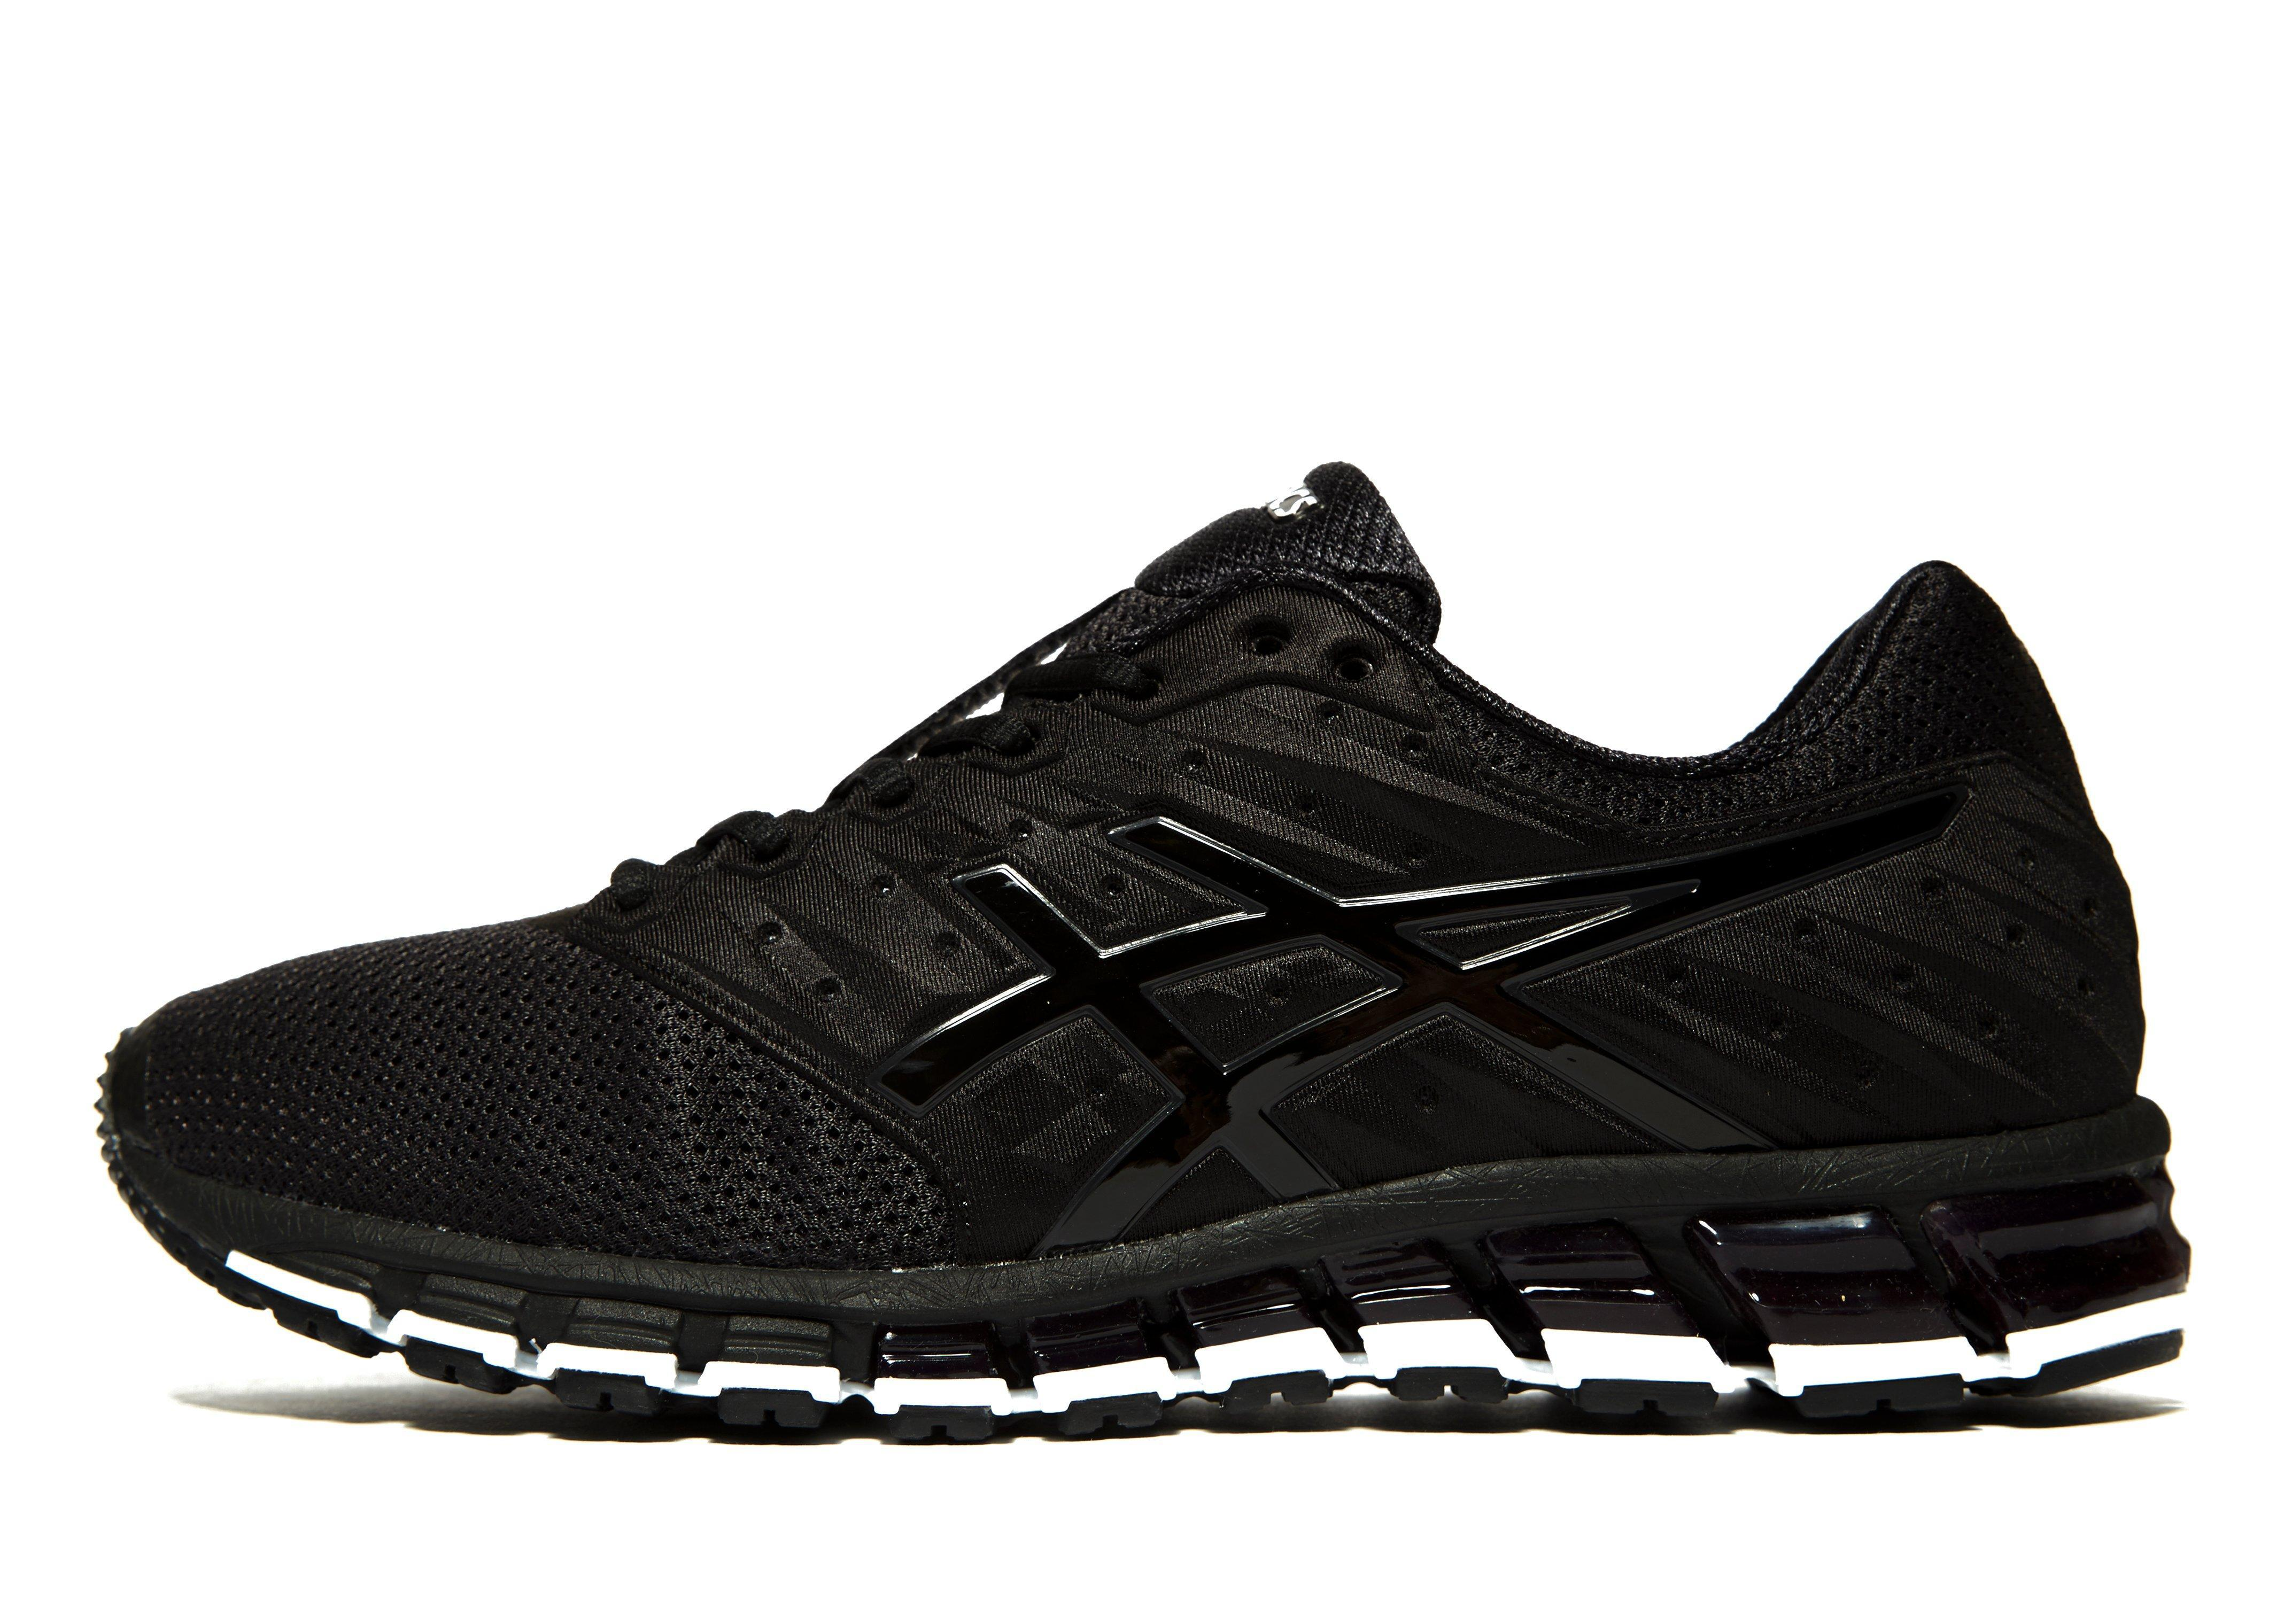 lyst asics gel quantum 180 2 in black for men. Black Bedroom Furniture Sets. Home Design Ideas